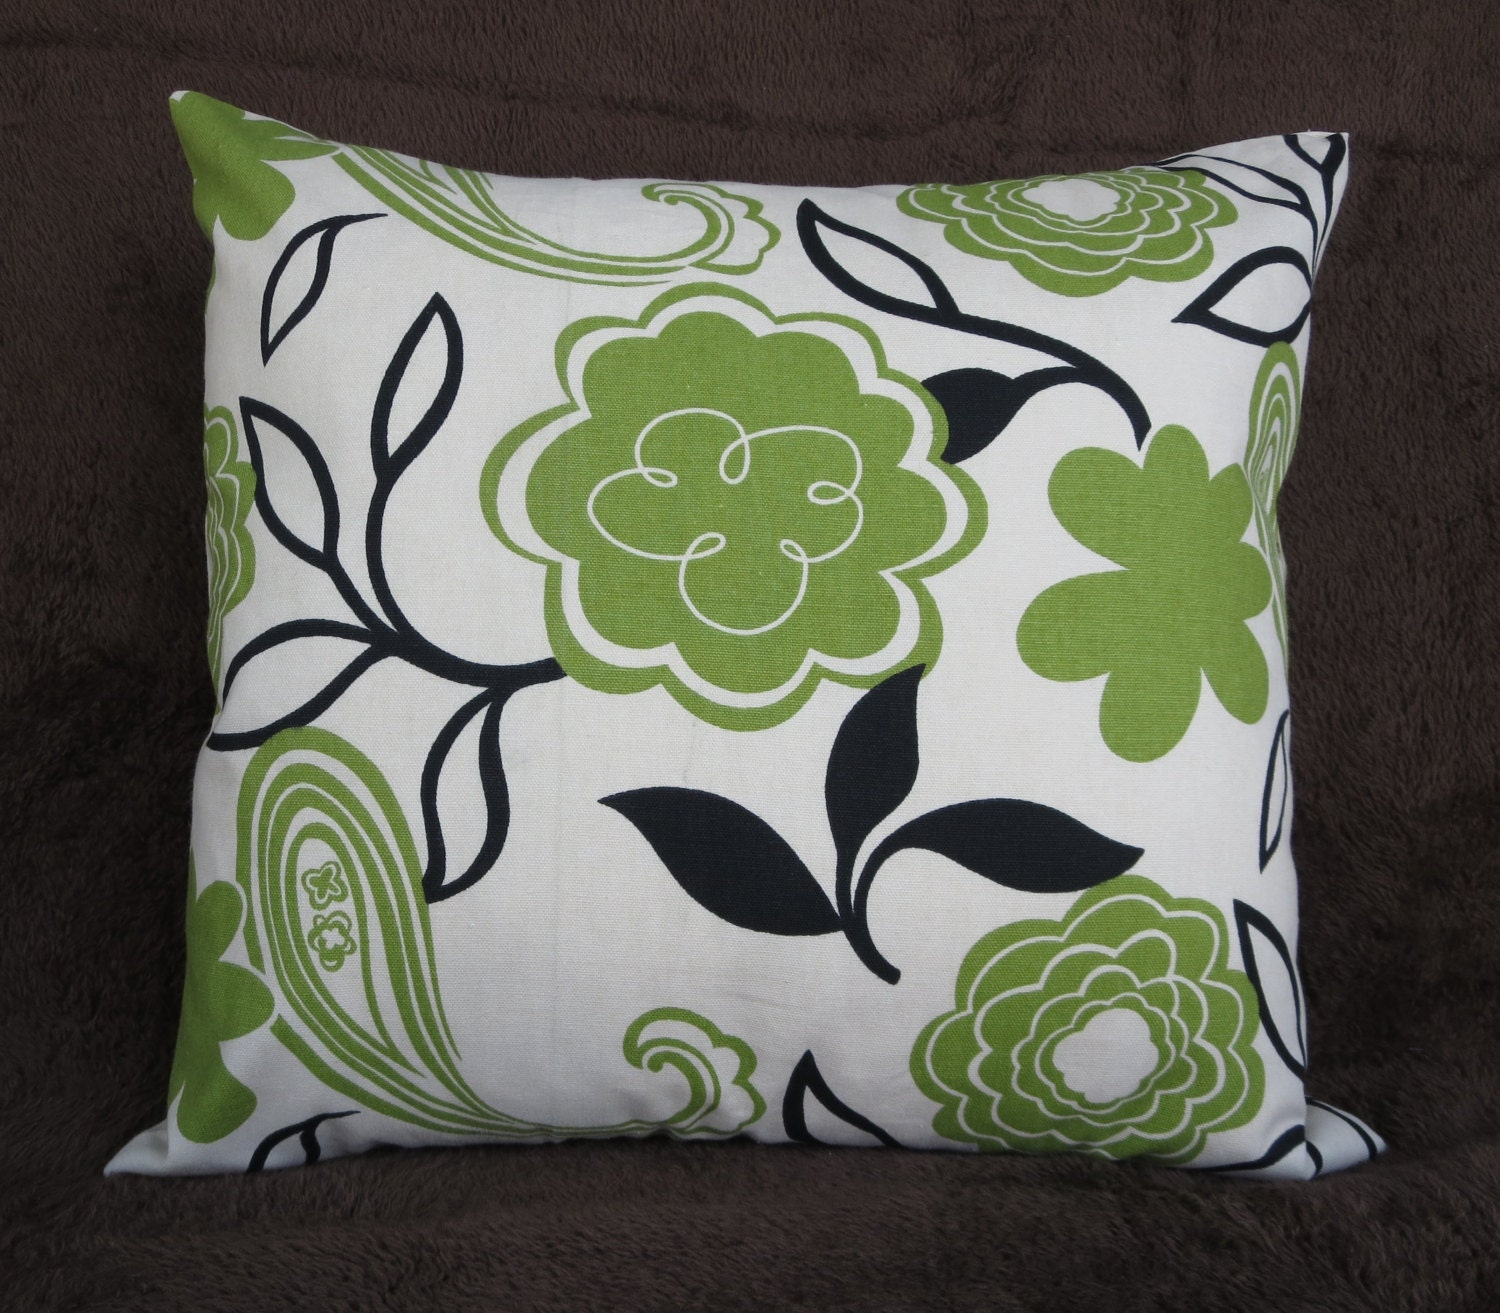 pillow cover 20x20, 22x22 inches pillow, green throw pillow, zipper enclosure, cotton pillow, floral pillow cover,green and black fabric - CoolRoomDecor